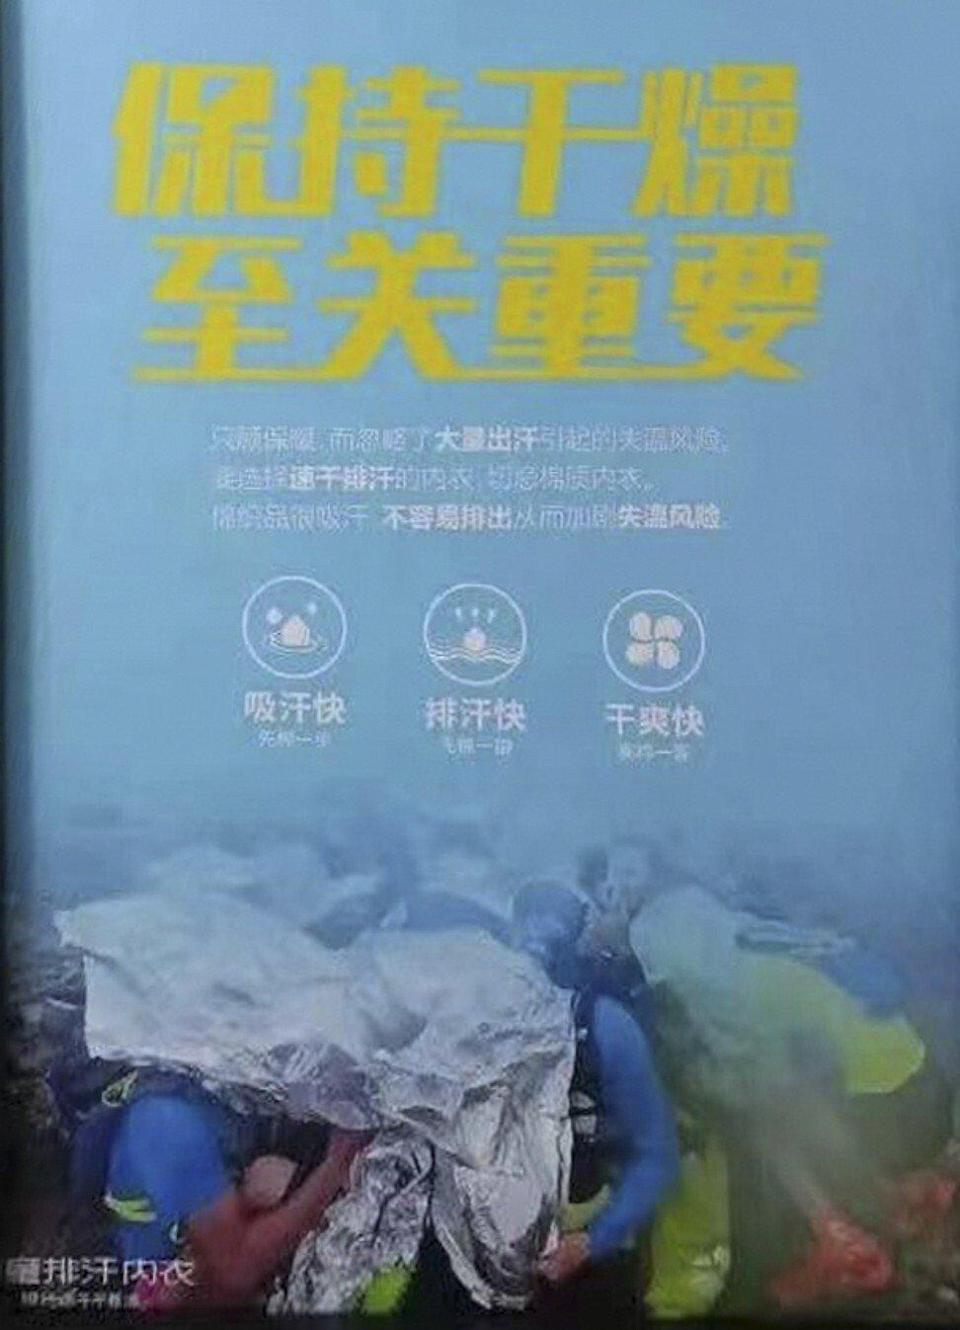 """The advertisement featured yellow text that reads """"keeping dry is critically important"""". CREDIT: qq.com"""